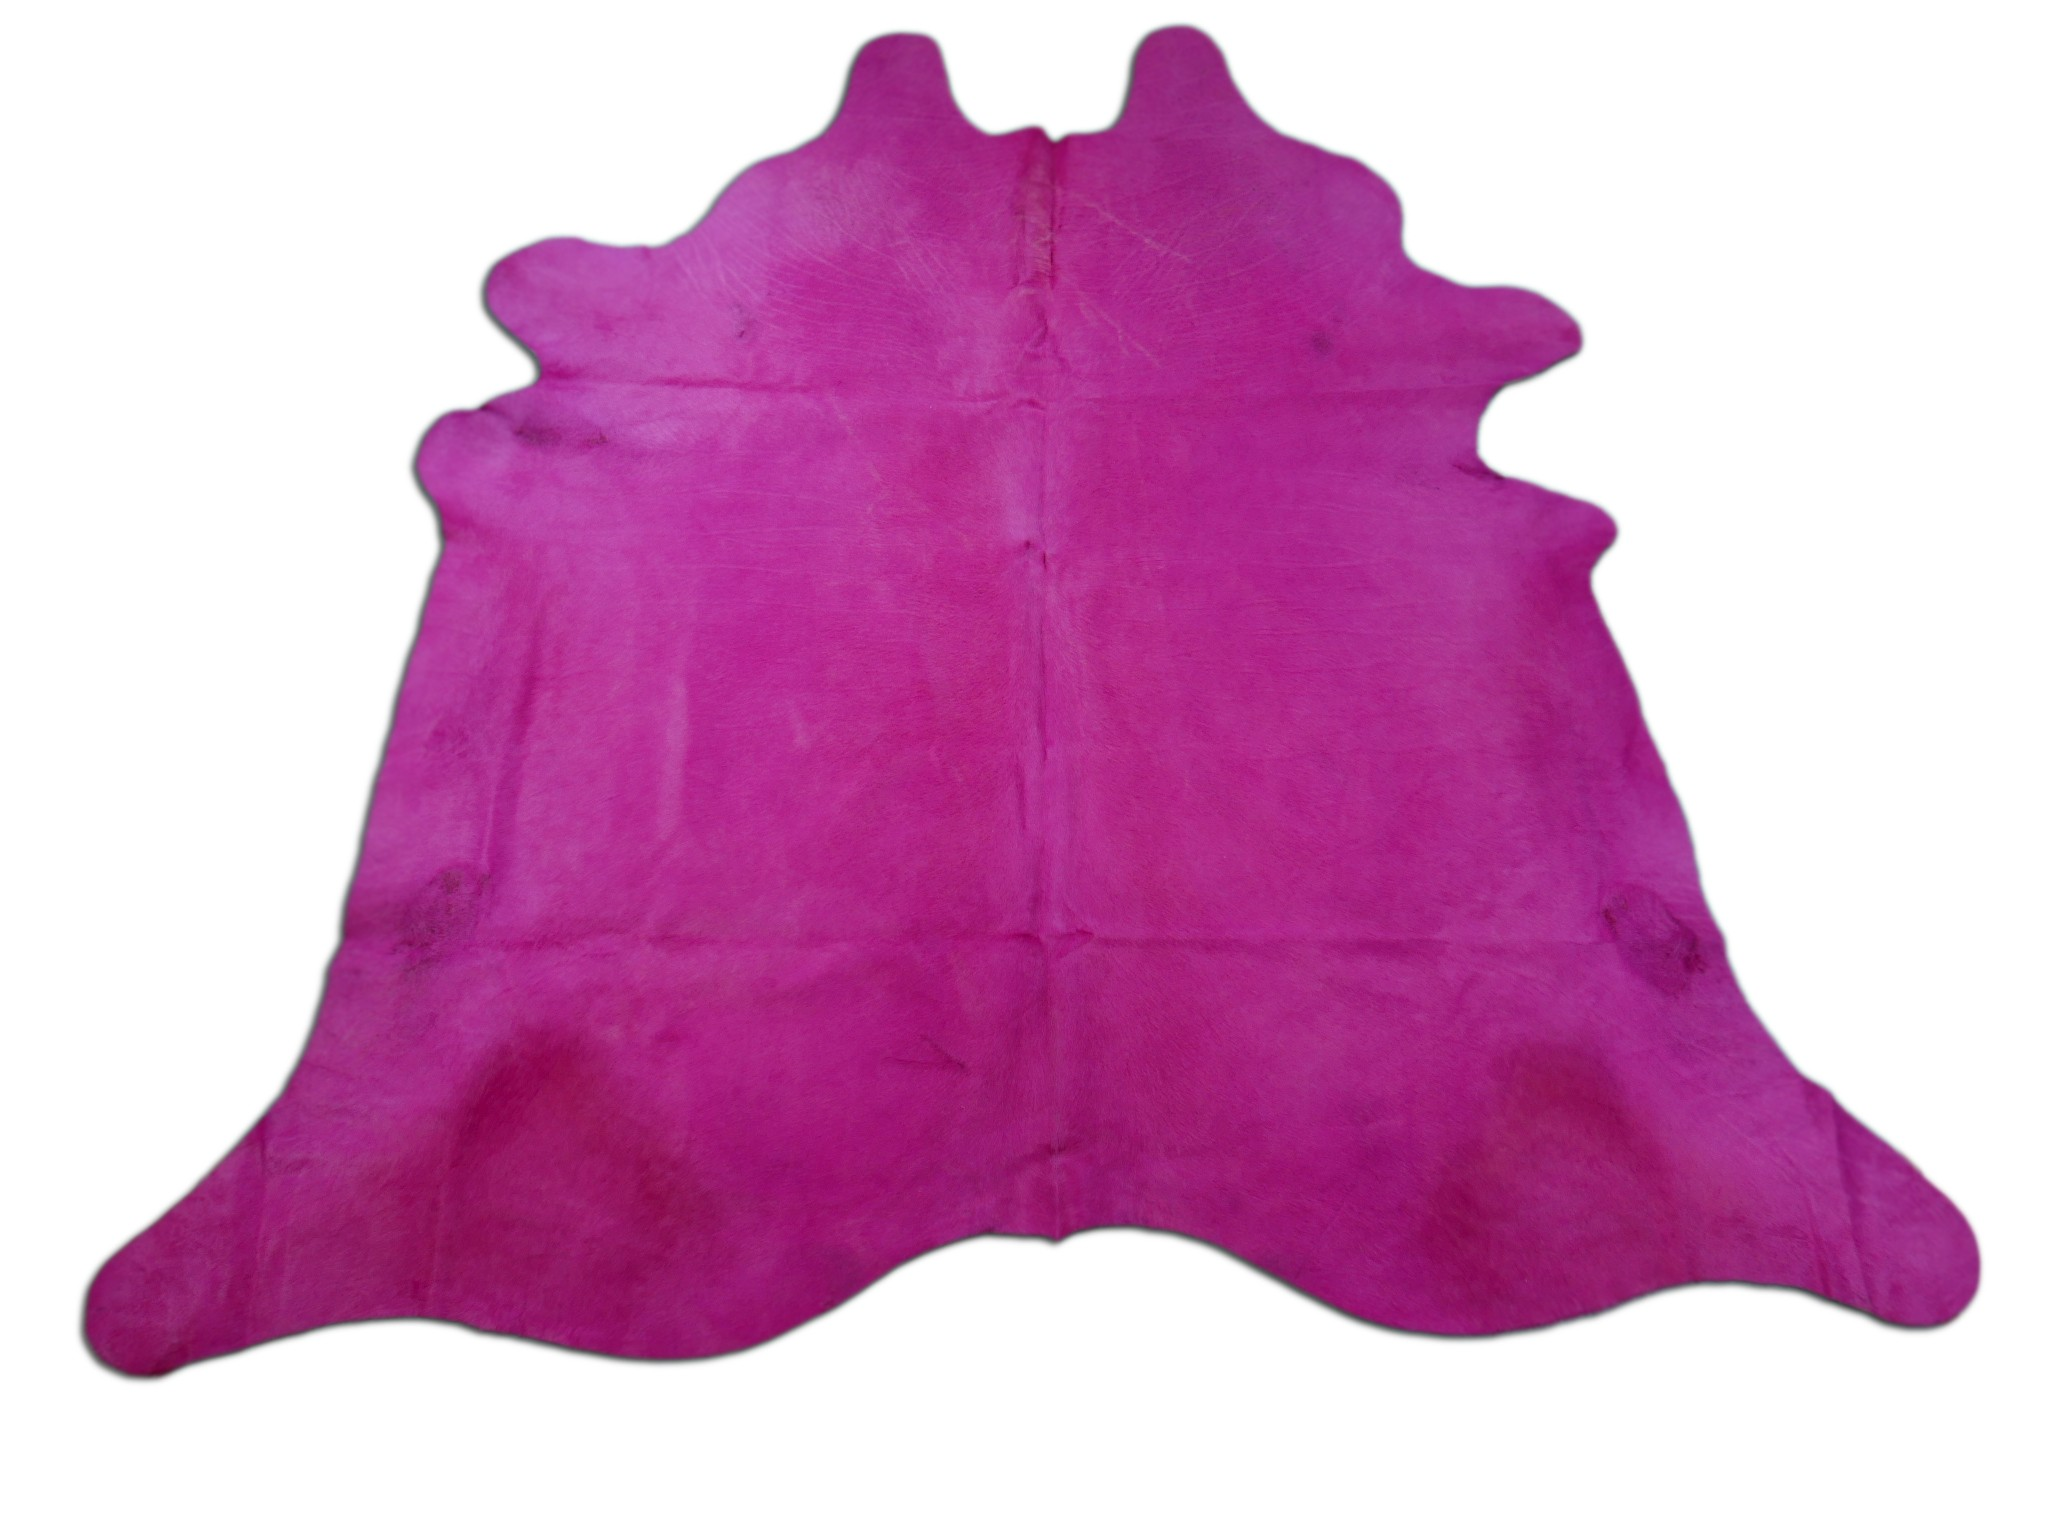 Dyed Pink Cowhide Rugs Size: ~7 X 7 ft Dyed Pink Cowhide Rugs